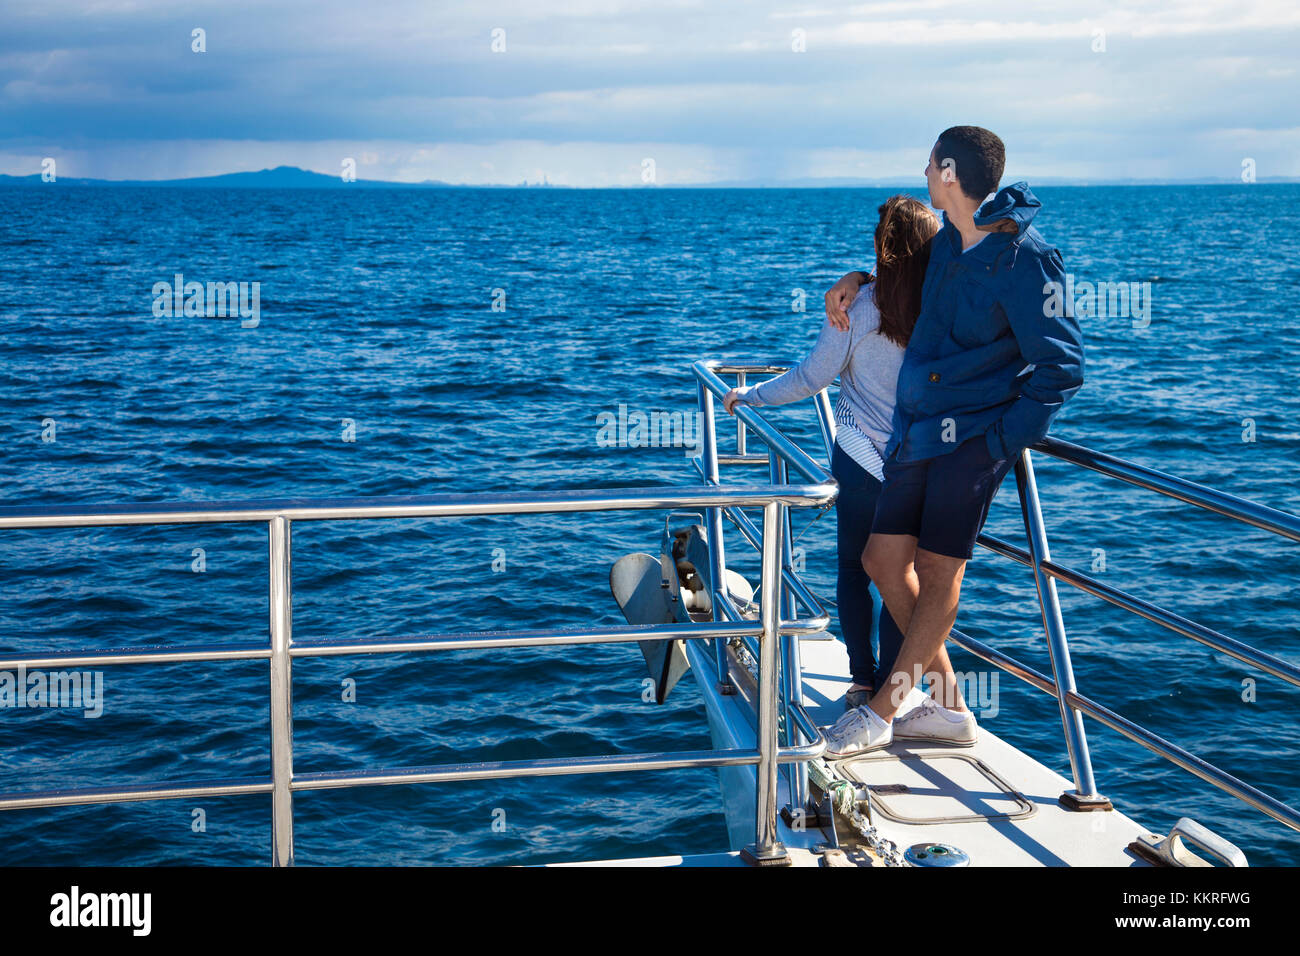 A couple embracing each other, looking out to sea on a cruise boat (Whale and Dolphin Safari, Auckland, New Zealand) - Stock Image